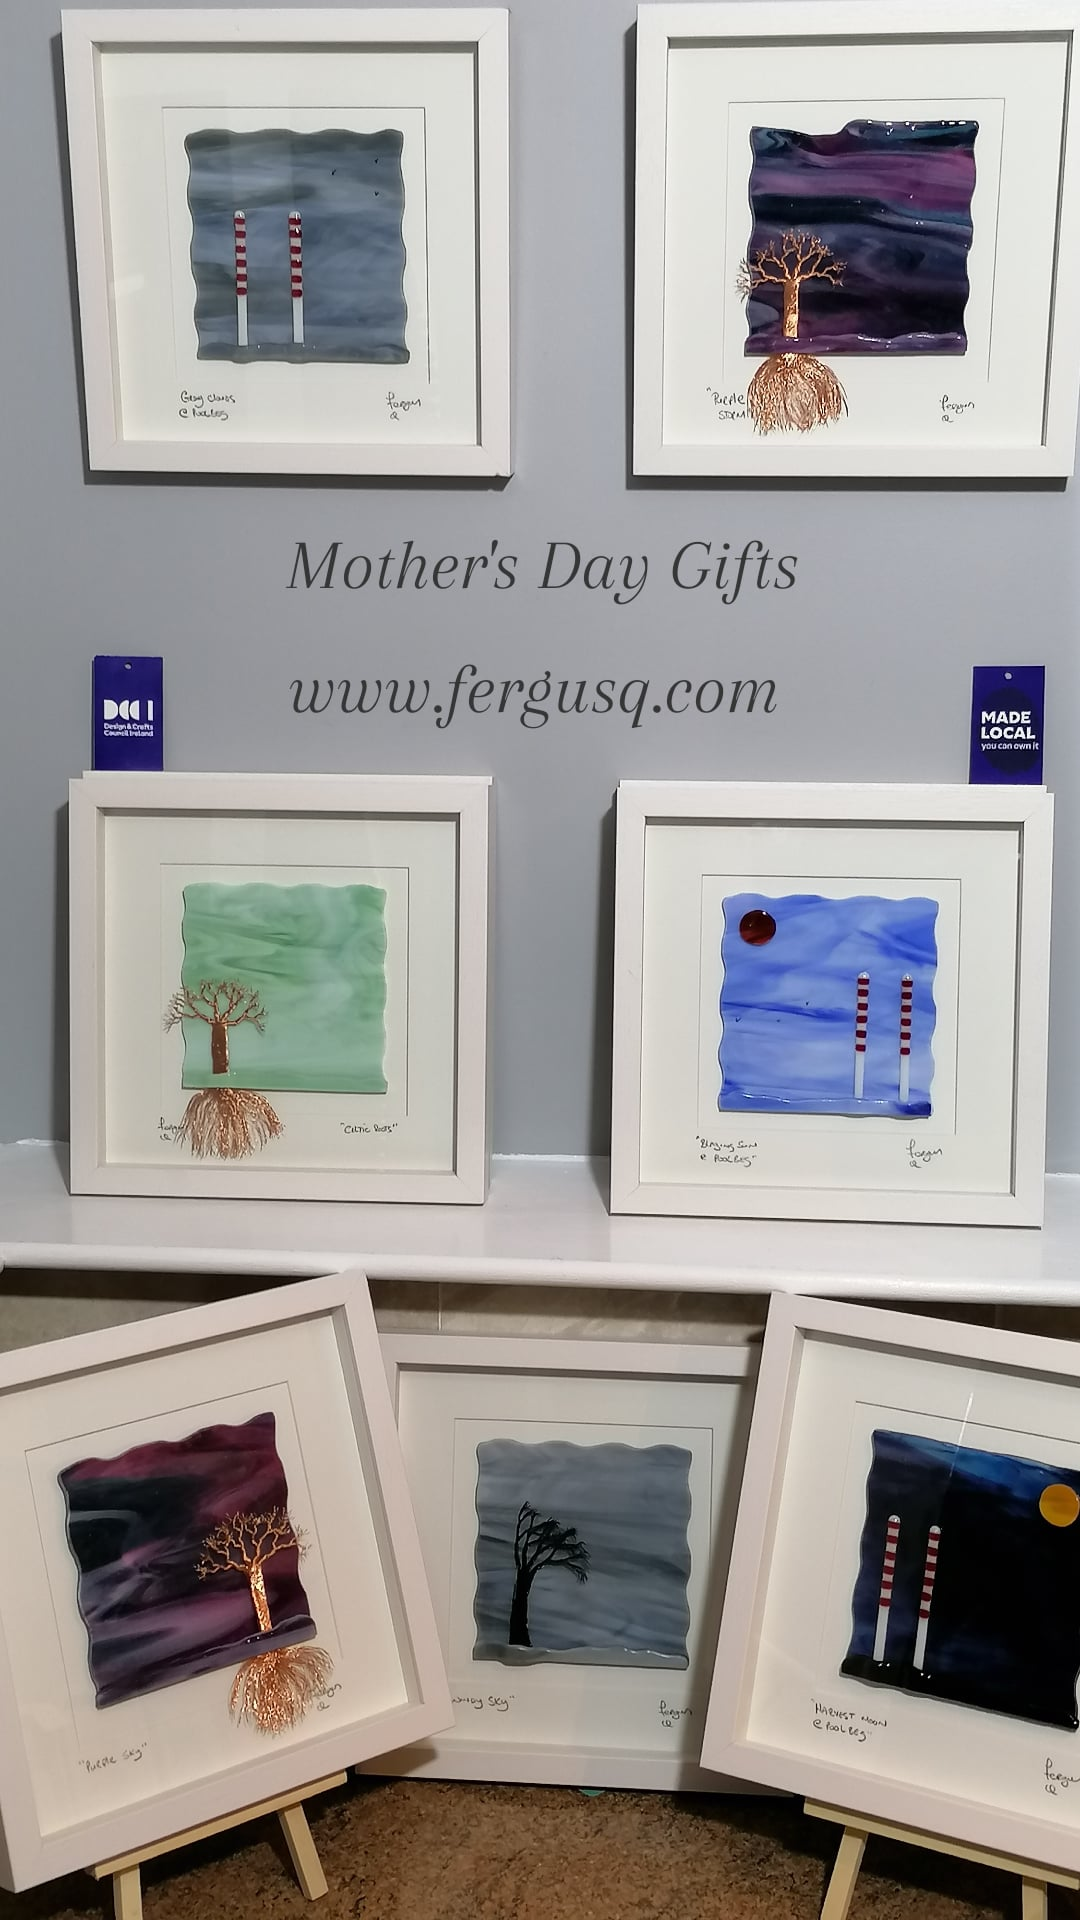 Mother's day gifts. A collection of Framed Glass Art Pictures some with handmade copper wire Trees & some with the Poolbeg Chimmeys all made from glass